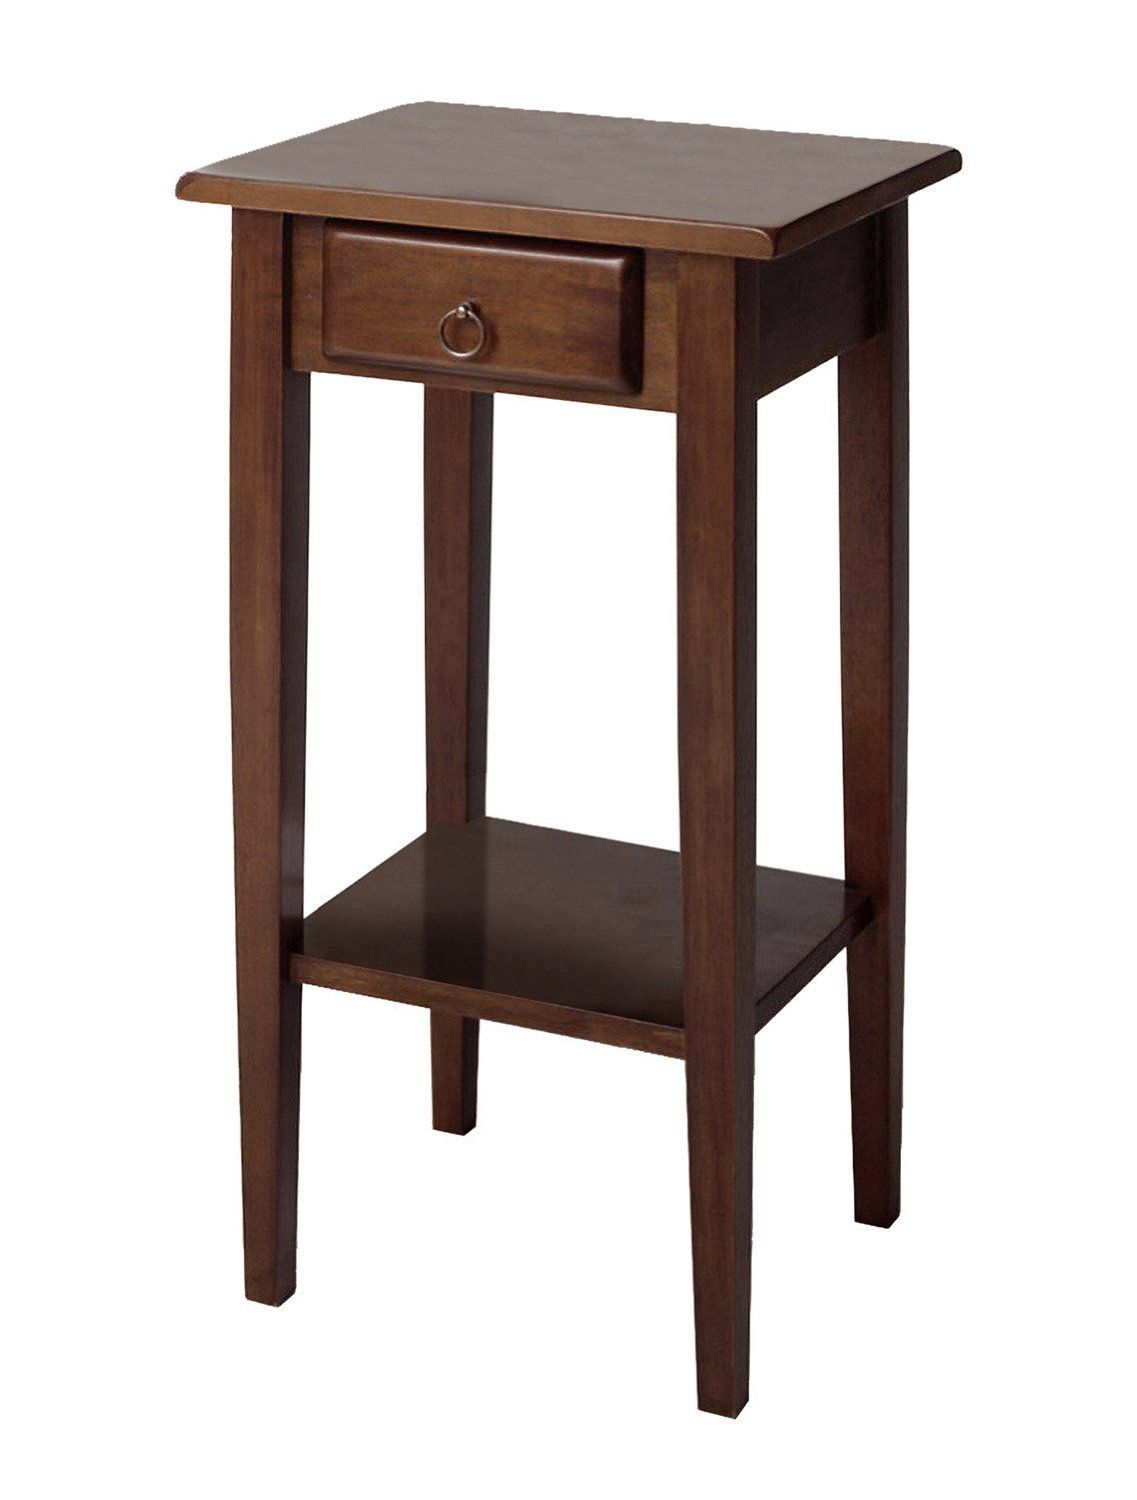 breathtaking small nightstand for bedroom furniture looks winsome accent tables best solutions nightstands bedrooms espresso wood single drawer and solid pine legs suppliers